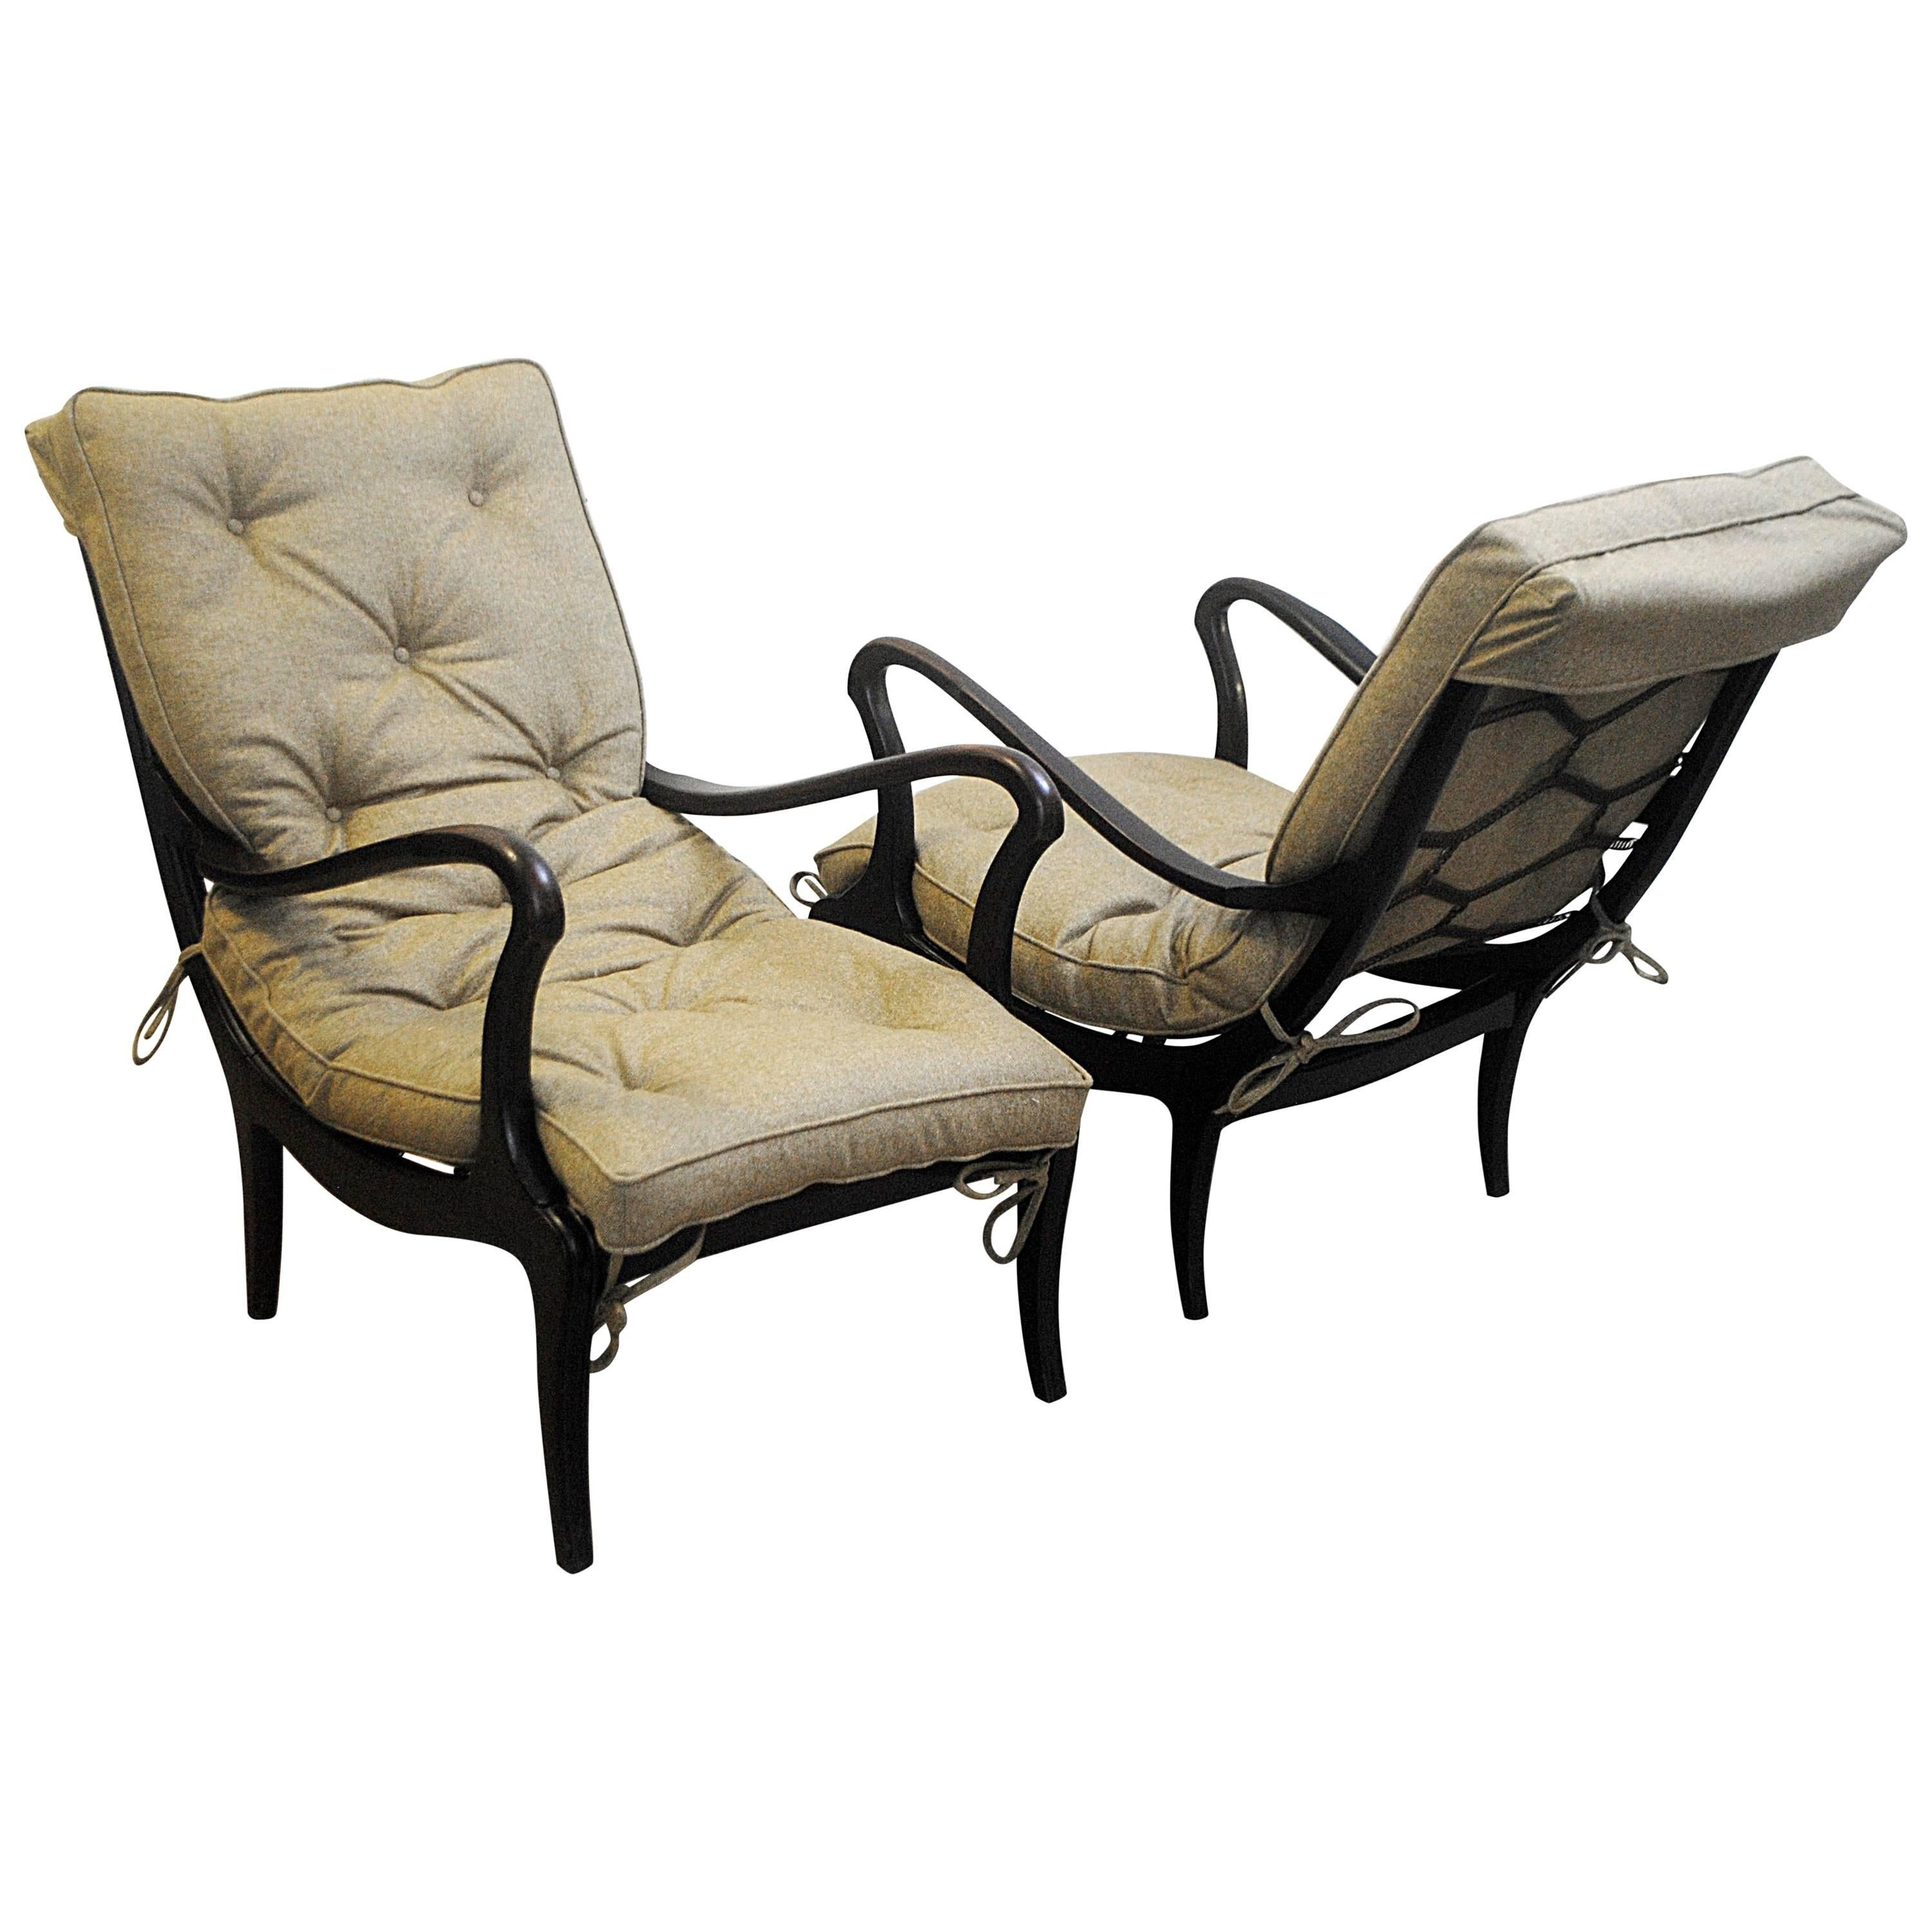 Pair of Two Lounge Chairs by Ezio Longhi 1950s, New Upholstery